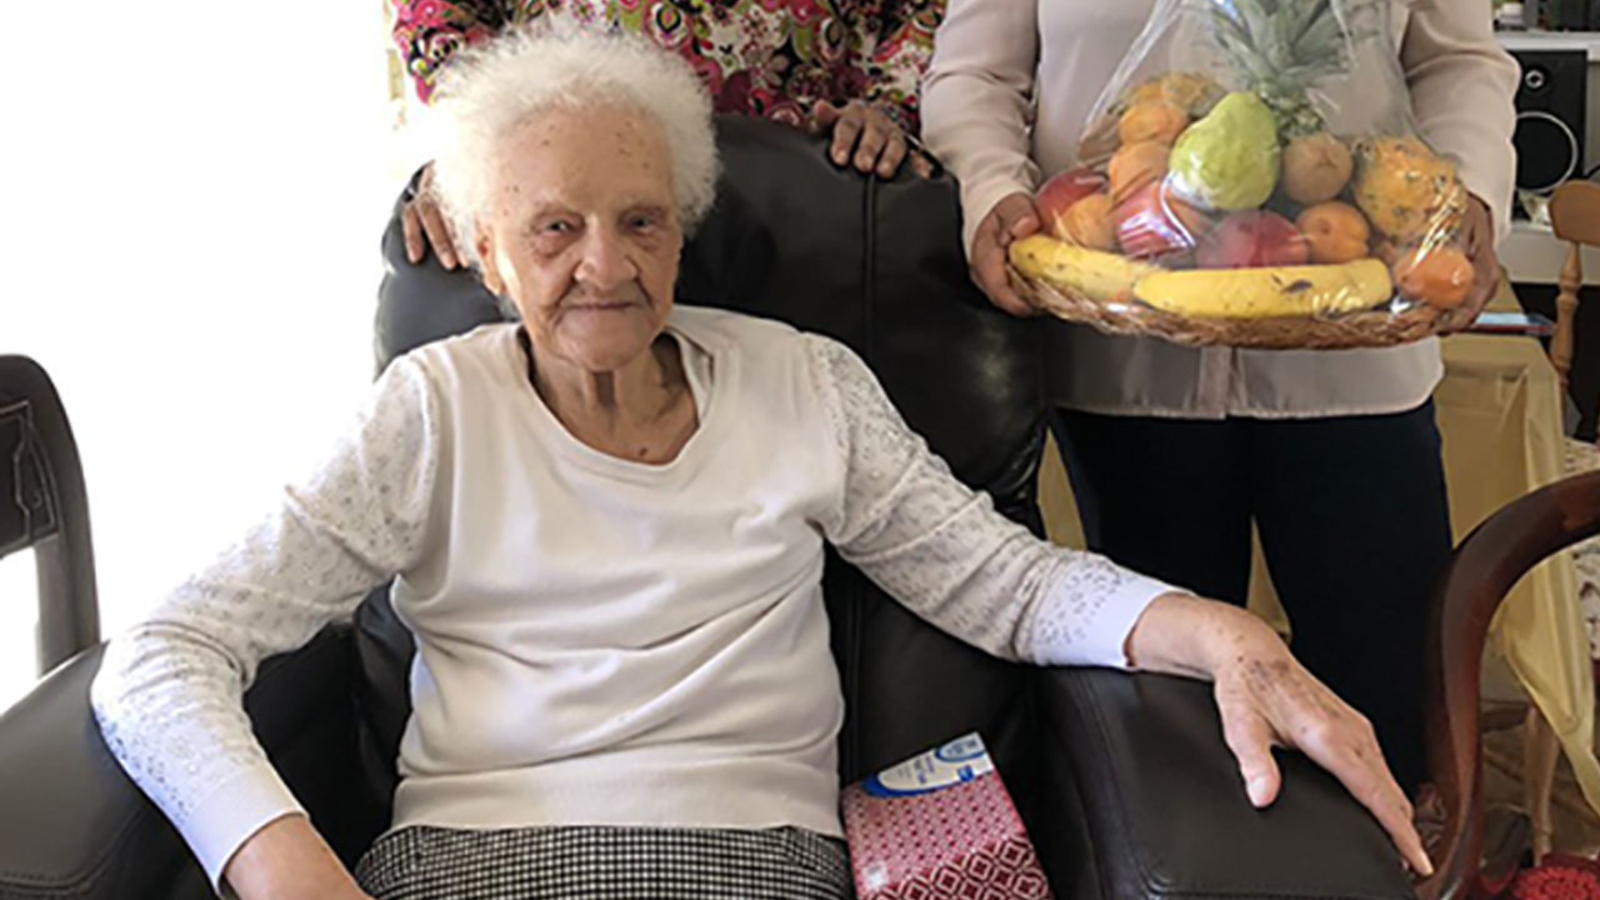 102-year-old woman facing eviction in Ladera Heights gets offer of help from Schwarzenegger